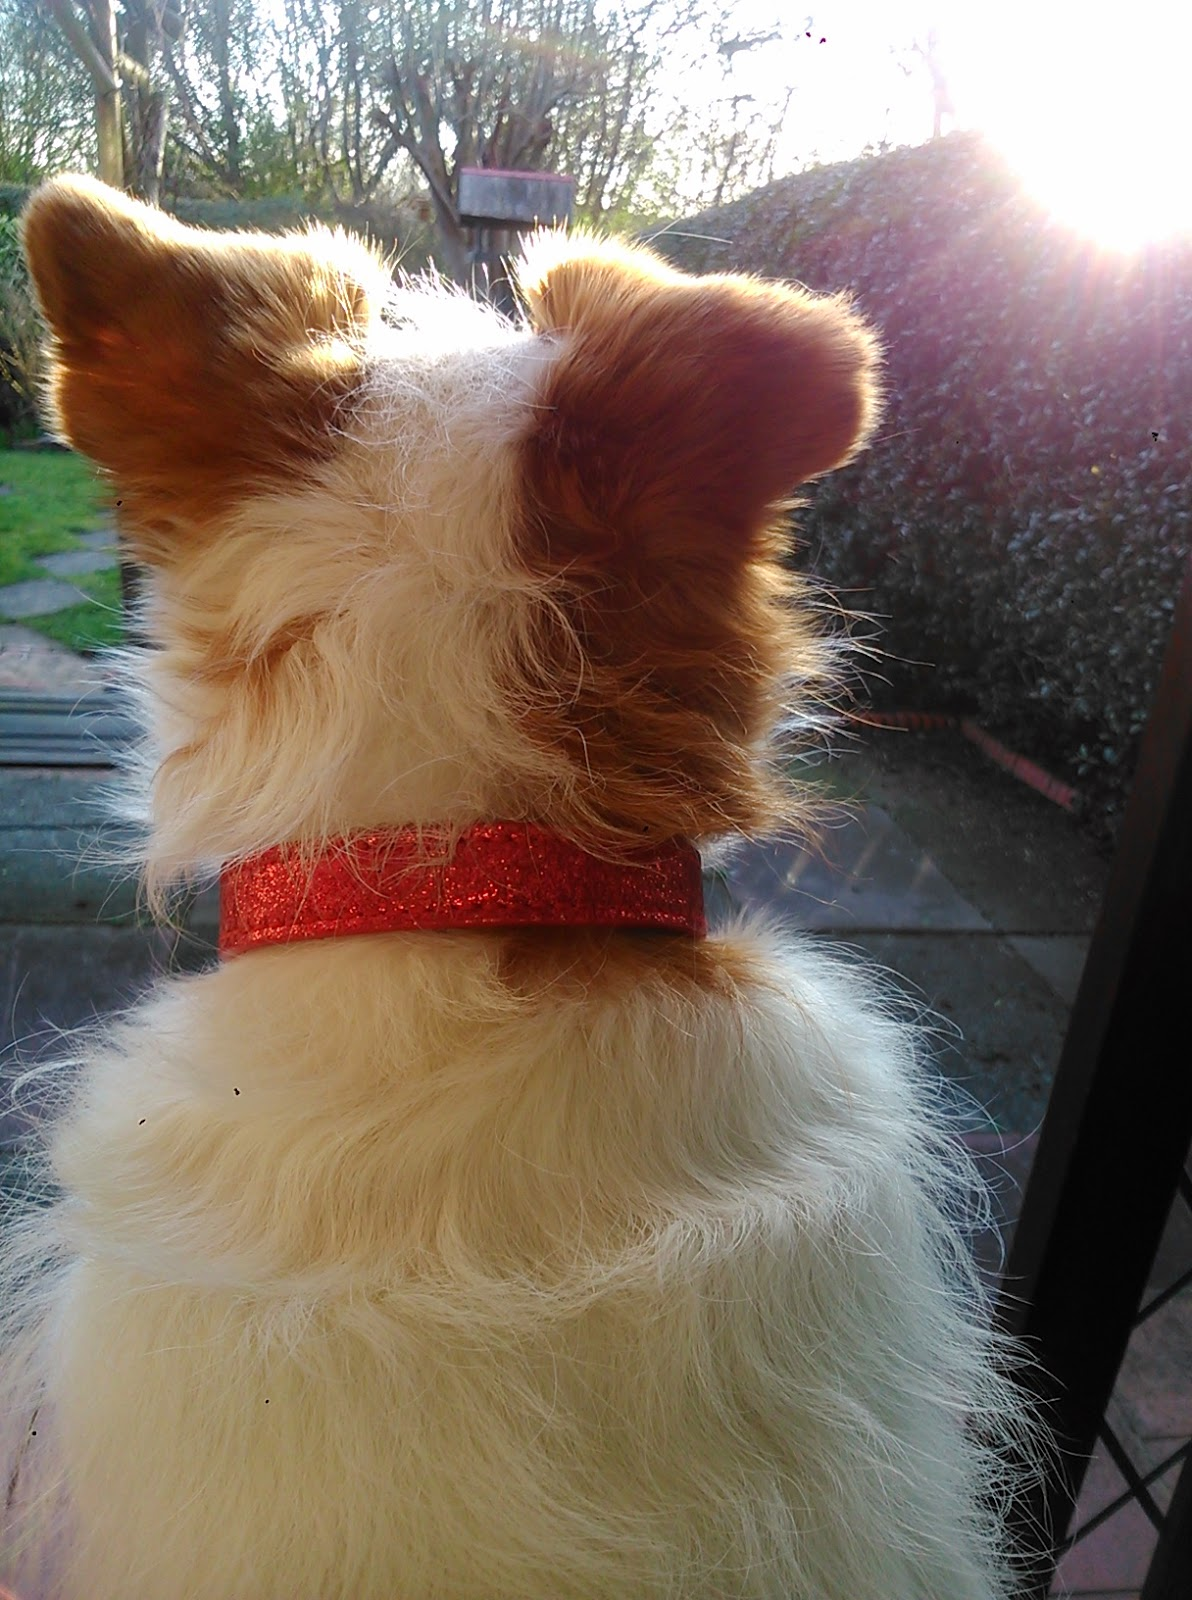 Jack Russell terrier looking out into the garden in springtime at sunset